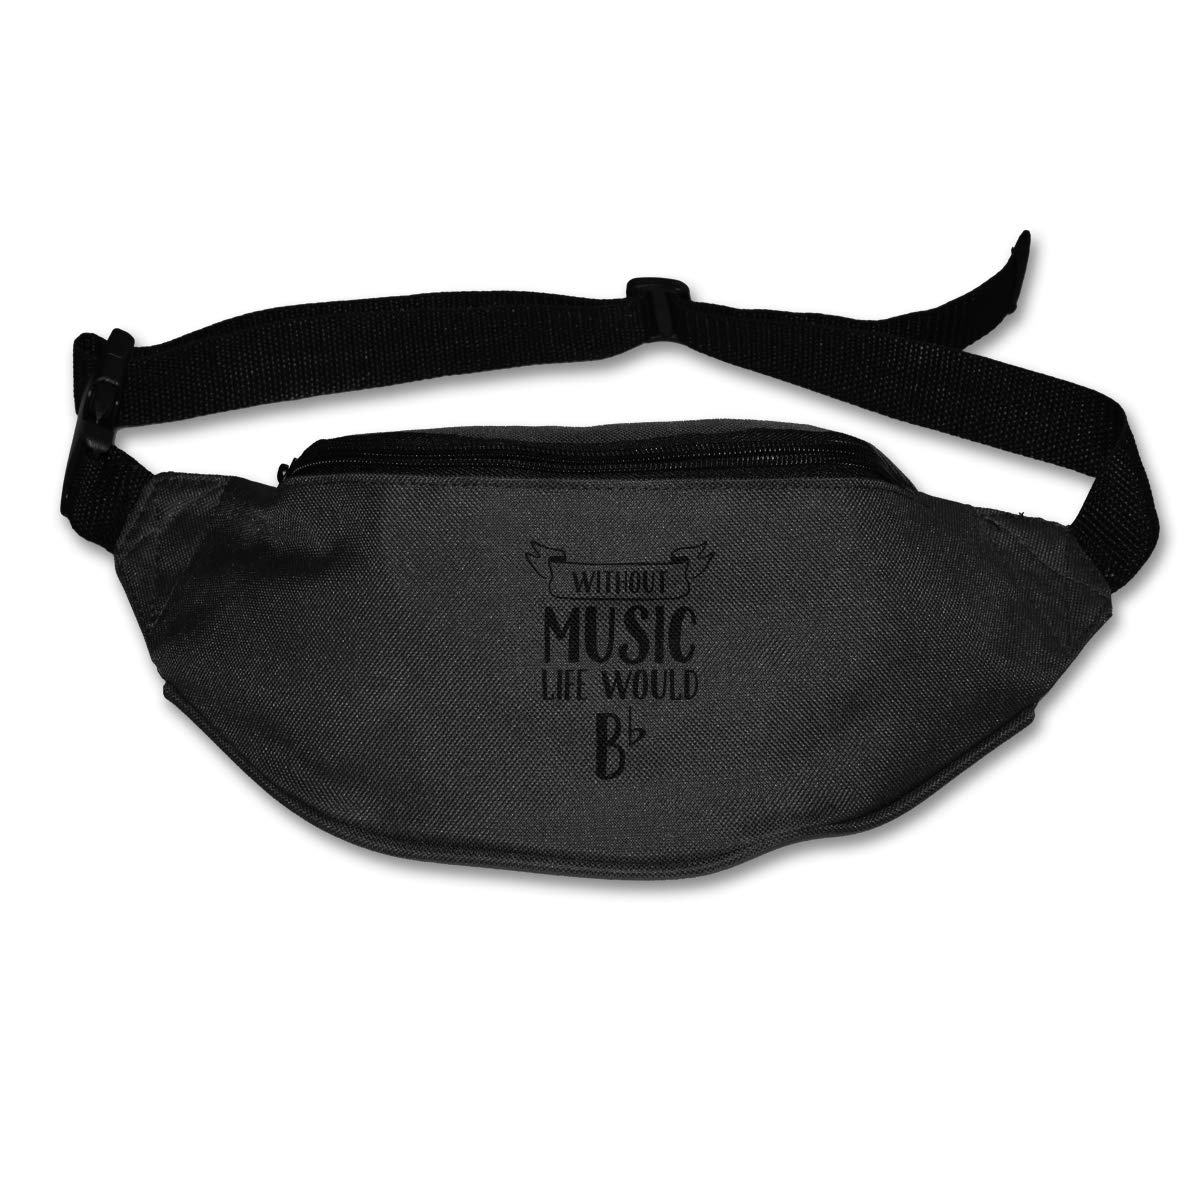 Without Music Life Would Be Flat Waist Bag Fanny Pack Adjustable For Travel